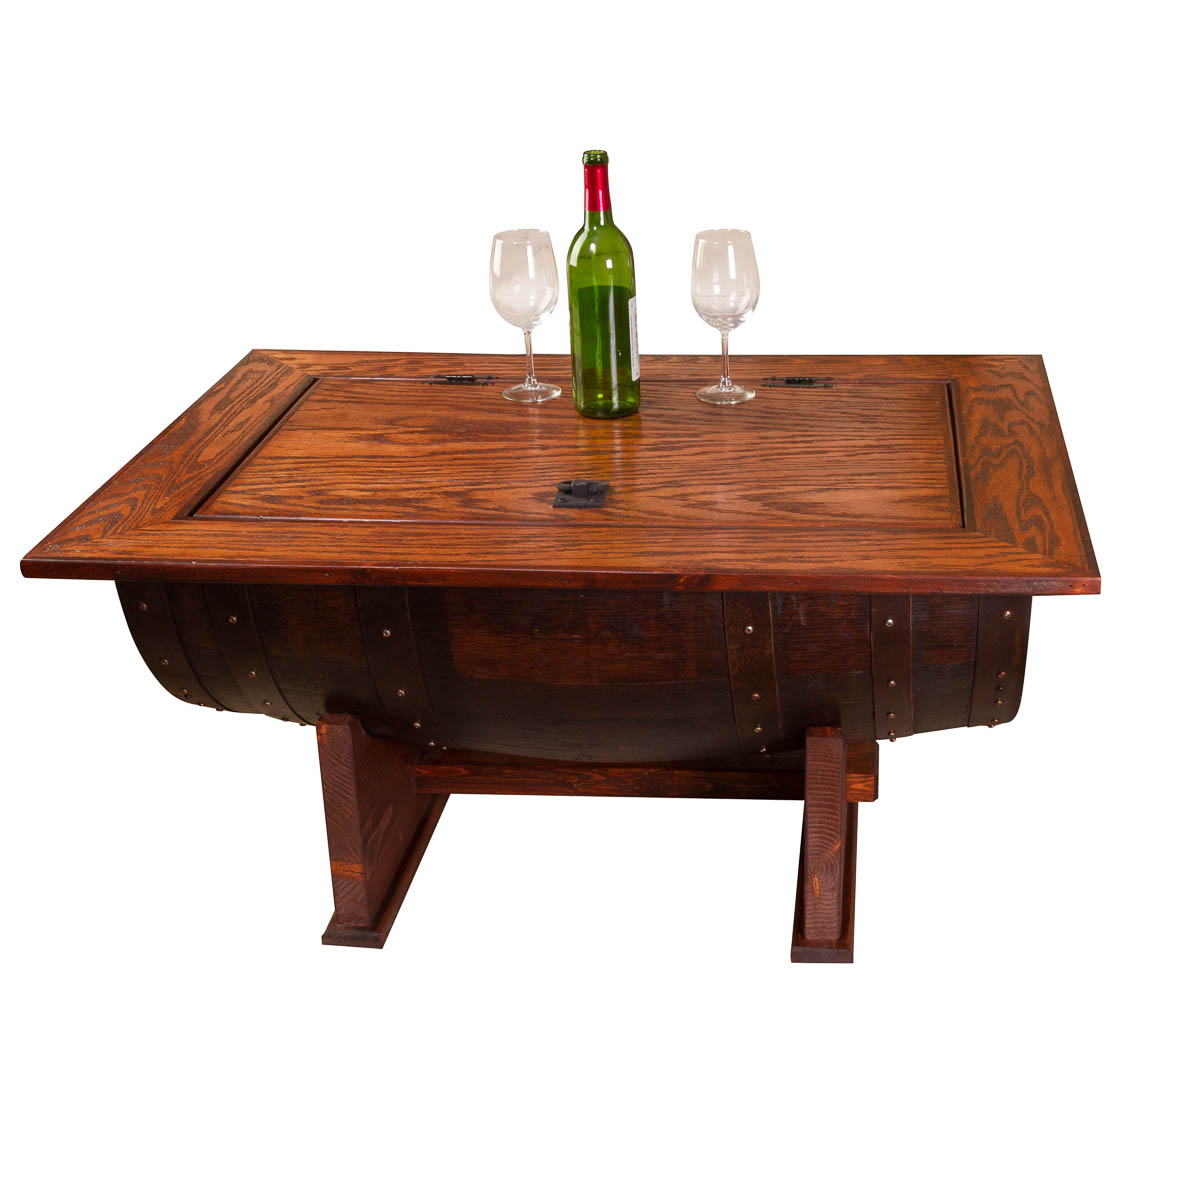 Finish Tables Wine Barrel Distressed Finish Coffee Table Napa East